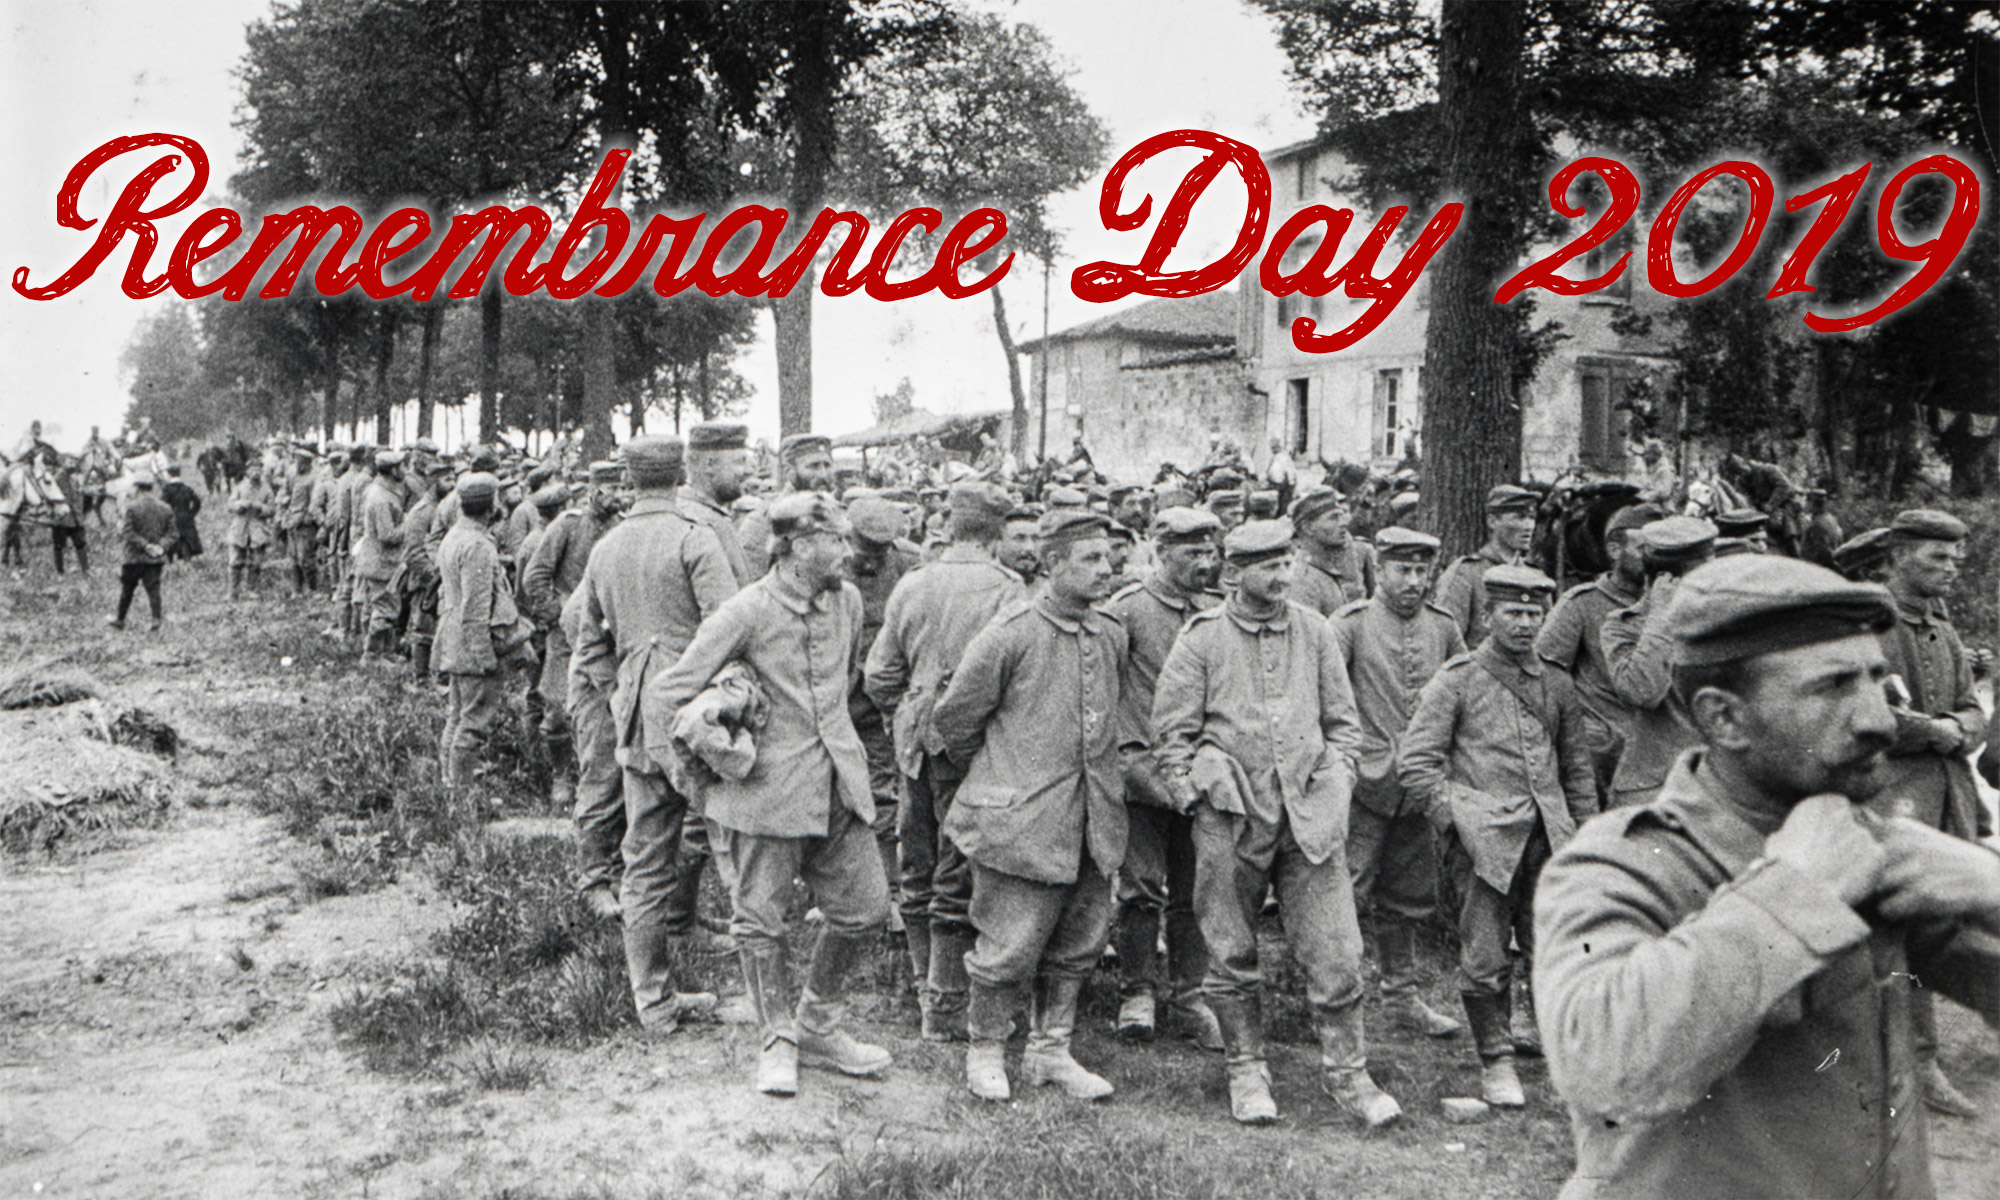 Remembrance Day 2019: 101 Amateur 3D Photos for 101 Years